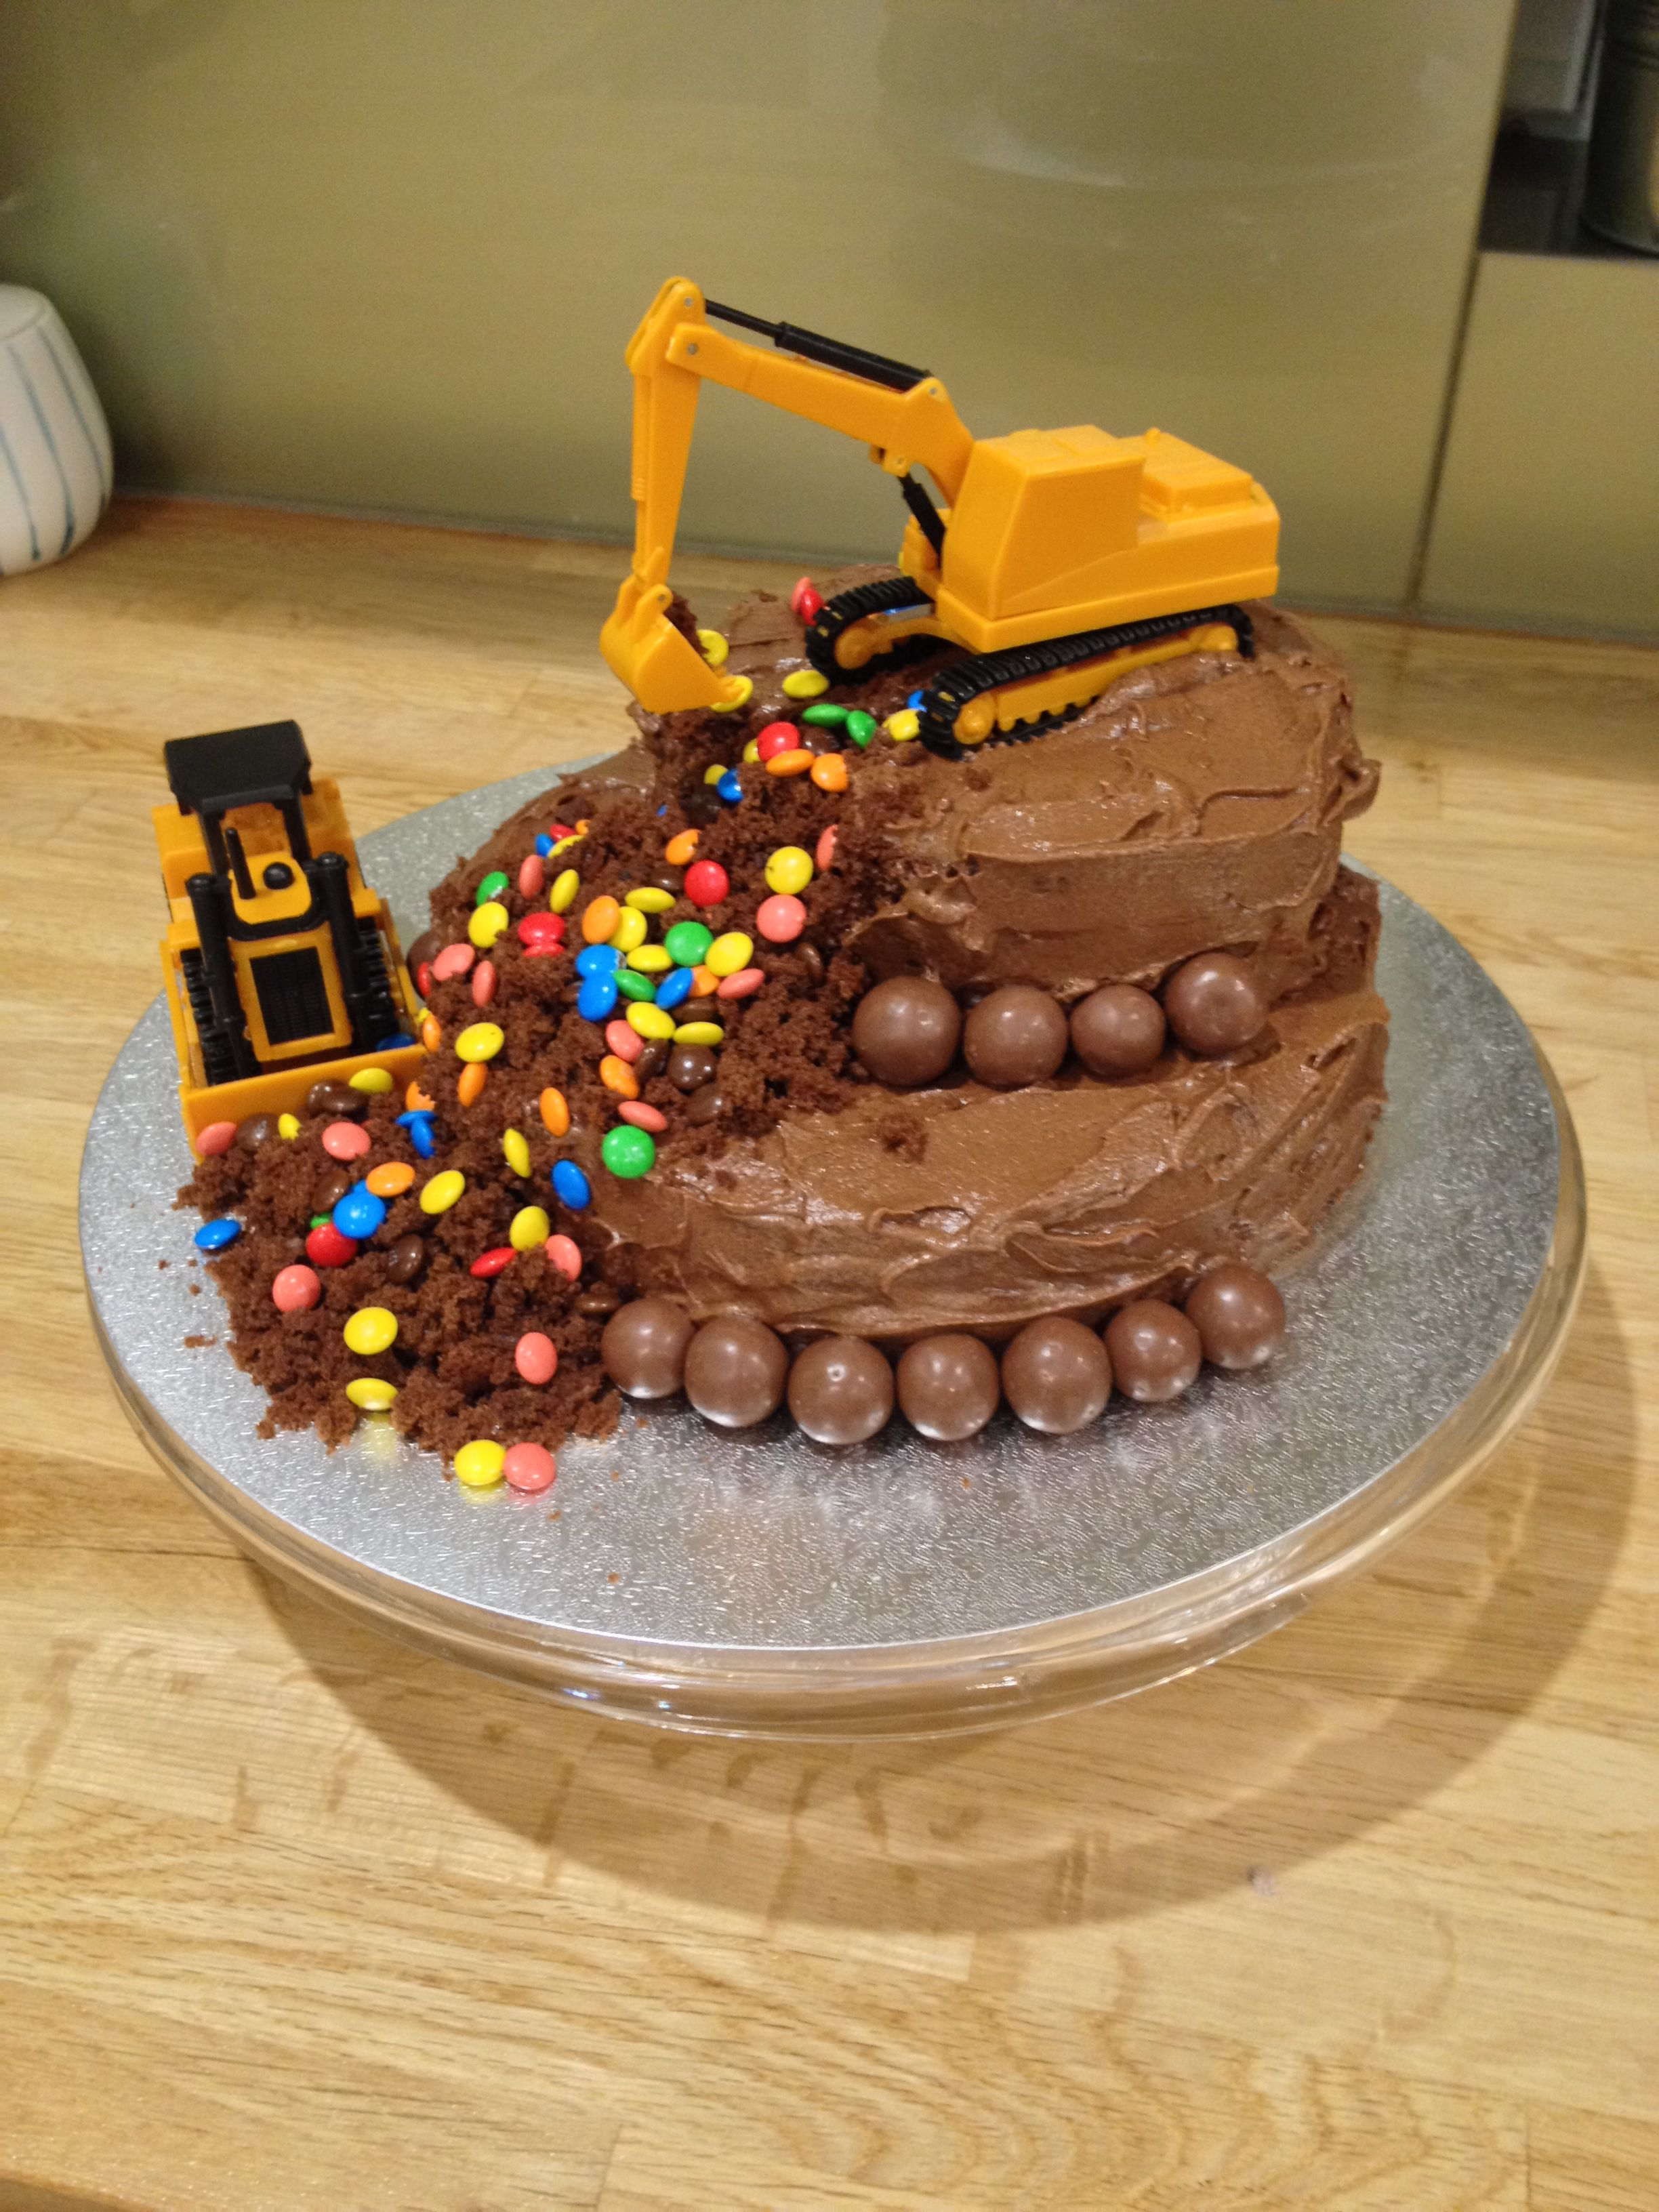 Construction theme cake for my 3 year old boy who loves MMs 3rd